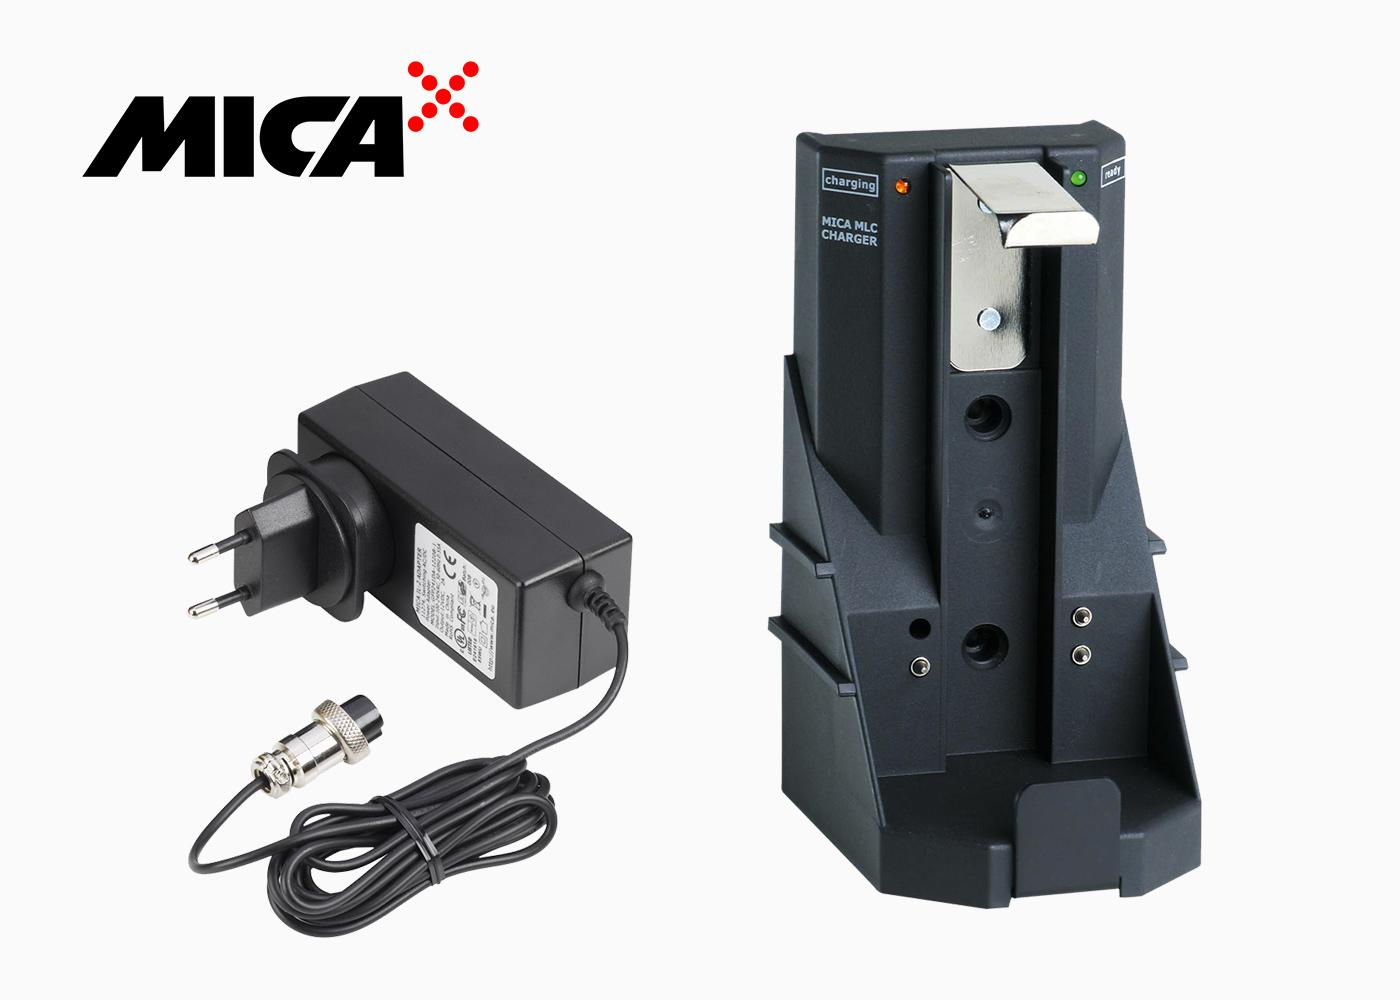 MICA MLC charger and IL-2 mains adapter.